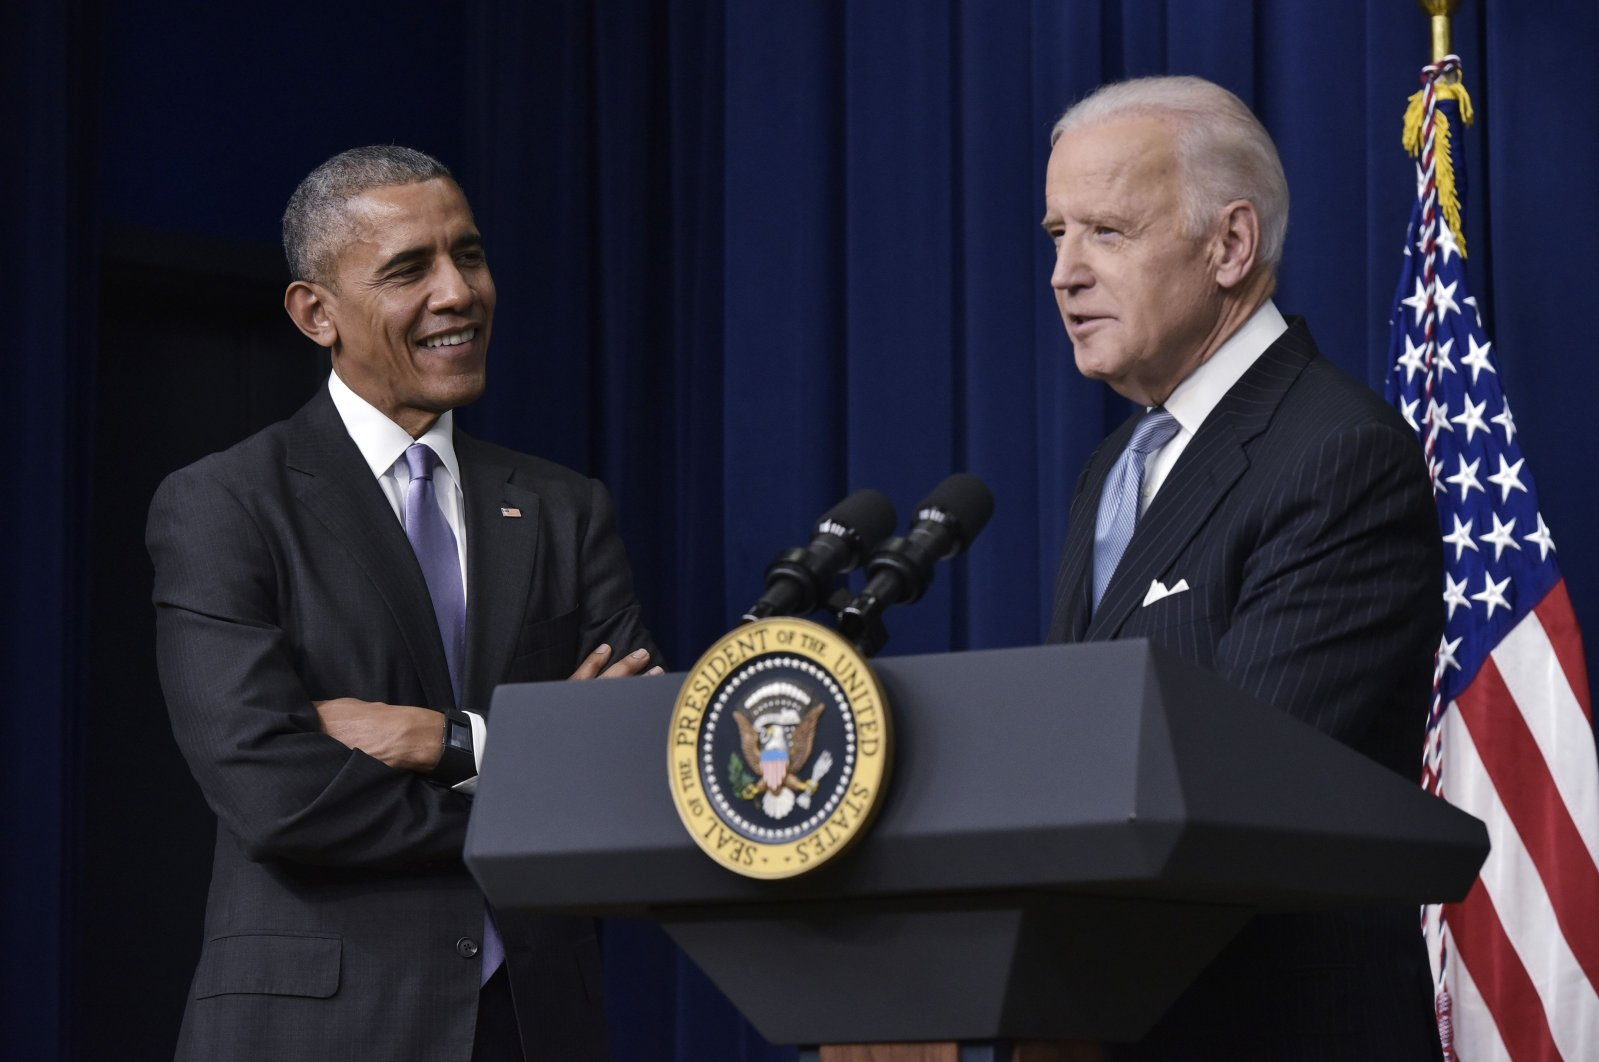 U.S. Vice President Joe Biden (R) speaks, watched by former President Barack Obama, during the signing ceremony for the 21st Century Cures Act in the South Court Auditorium, next to the White House, Washington, D.C., Dec. 13, 2016. (AFP Photo)